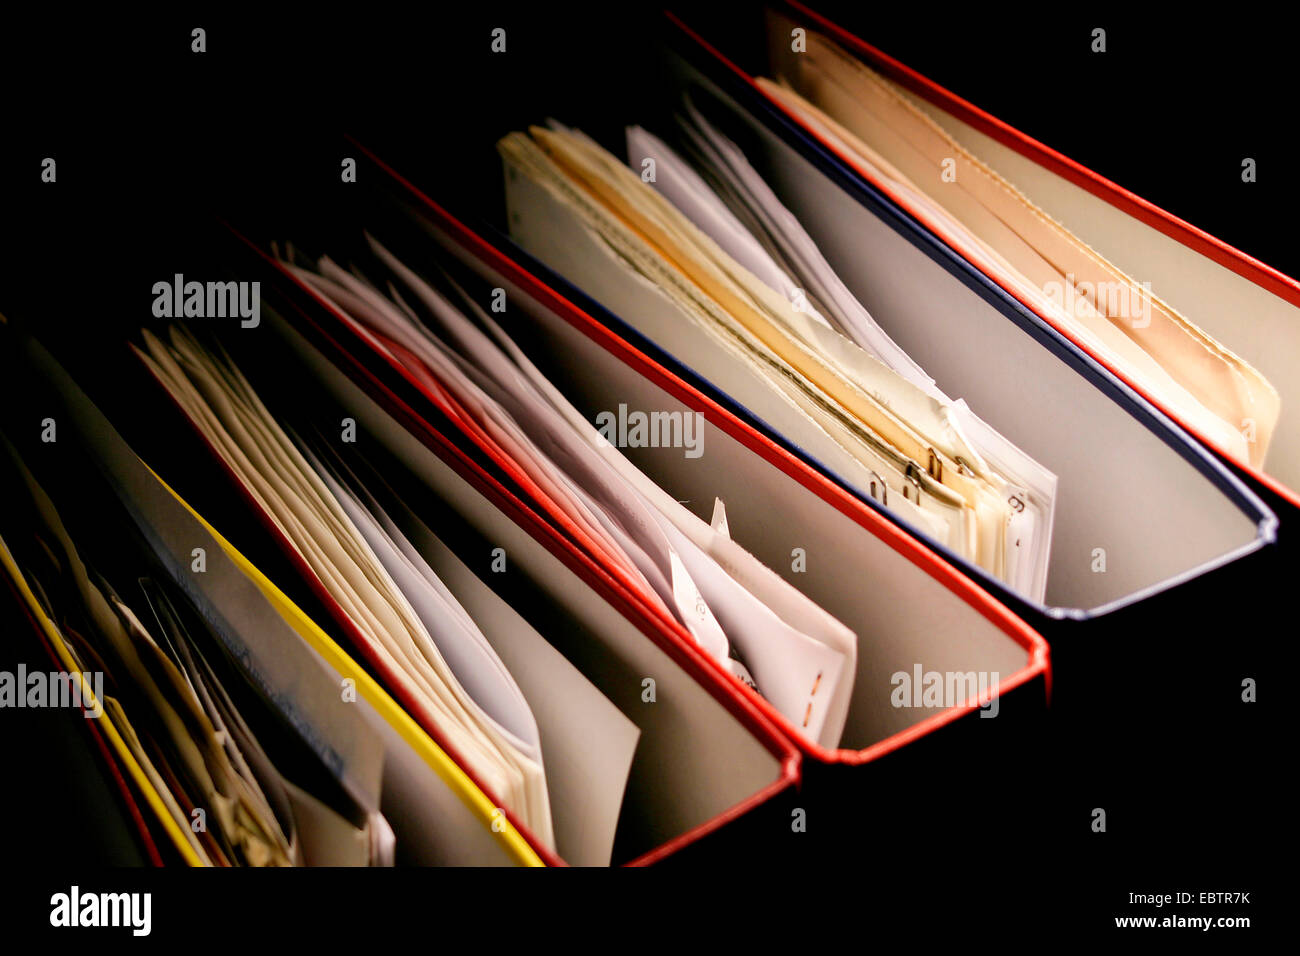 upper view of a row of files - Stock Image